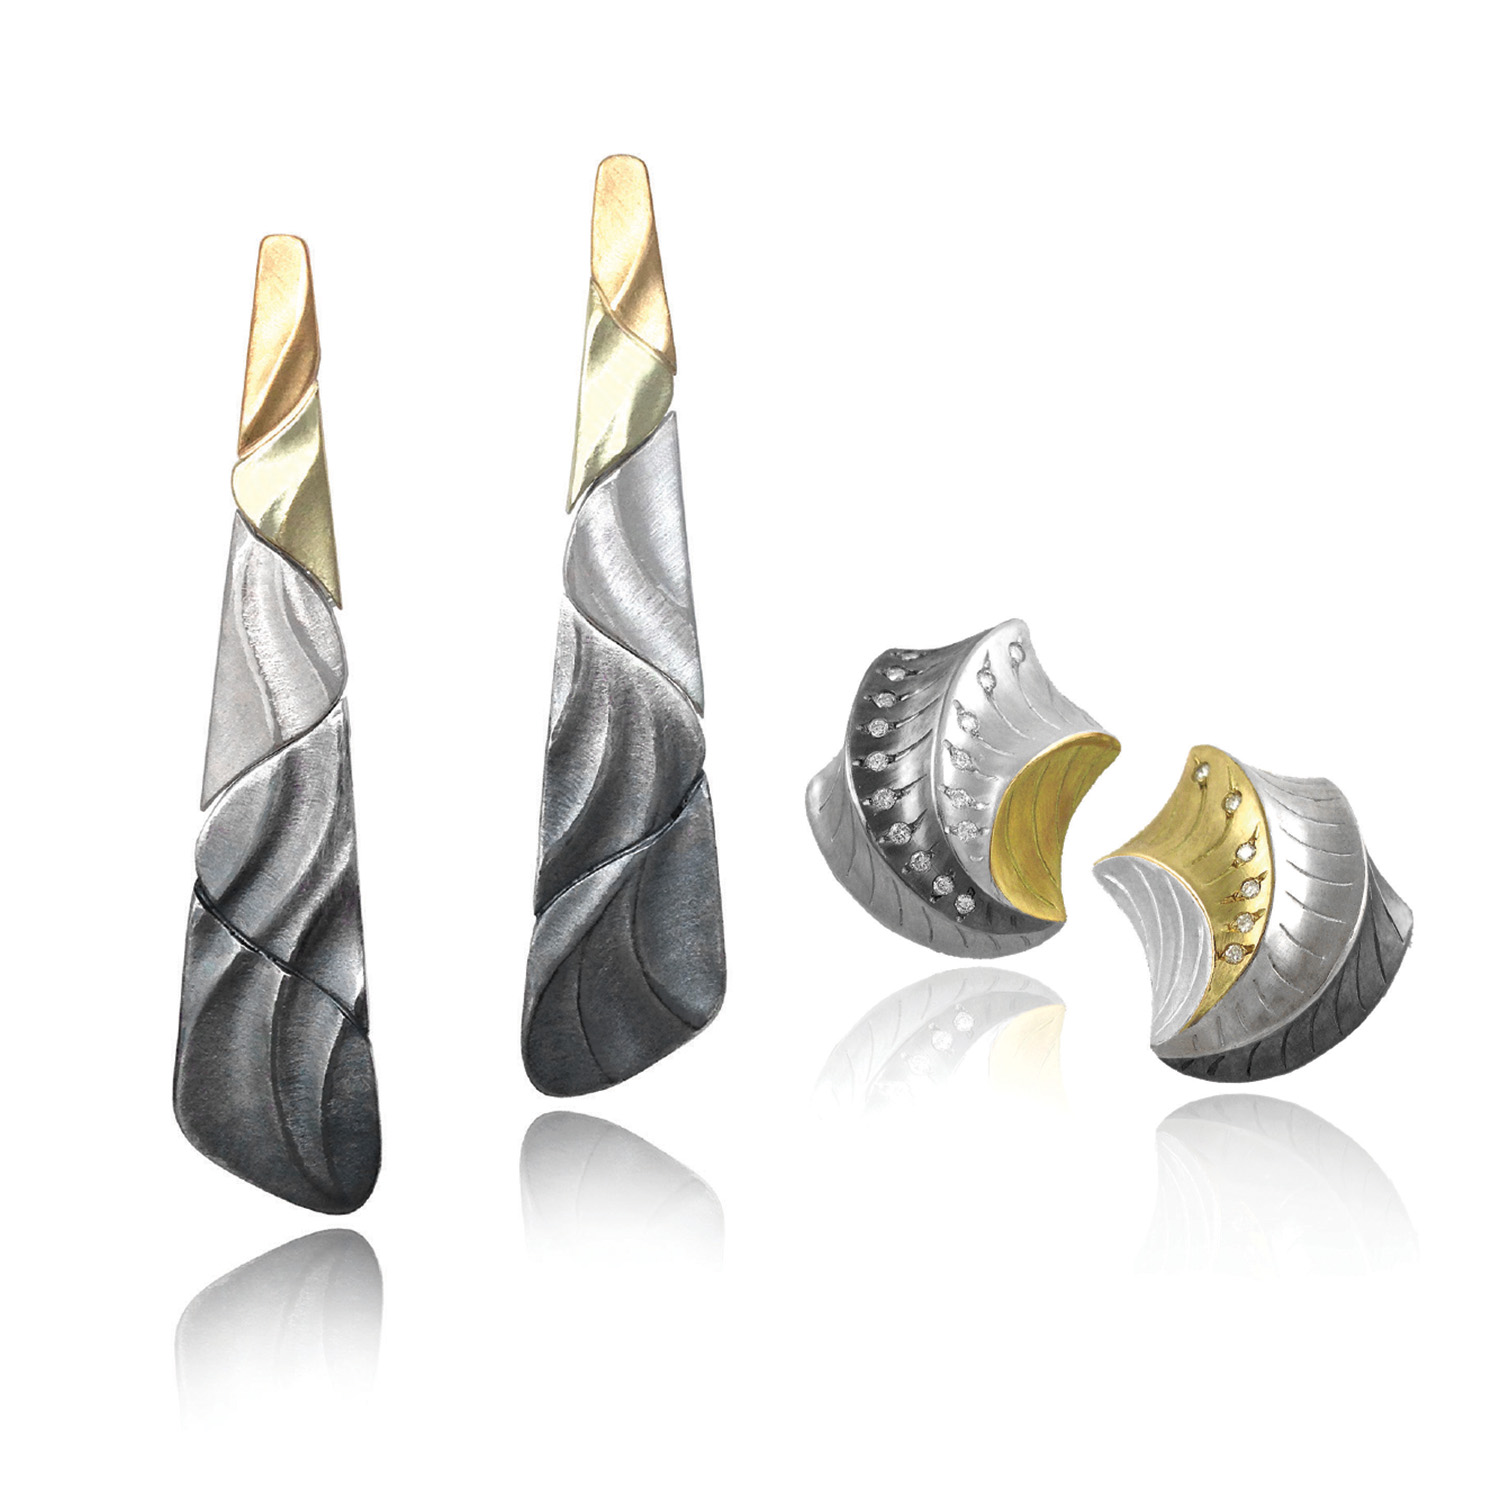 Ombre Earrings and Shell Shaped Earrings from K.Mita's Mixed Metal Sand Dune Collection